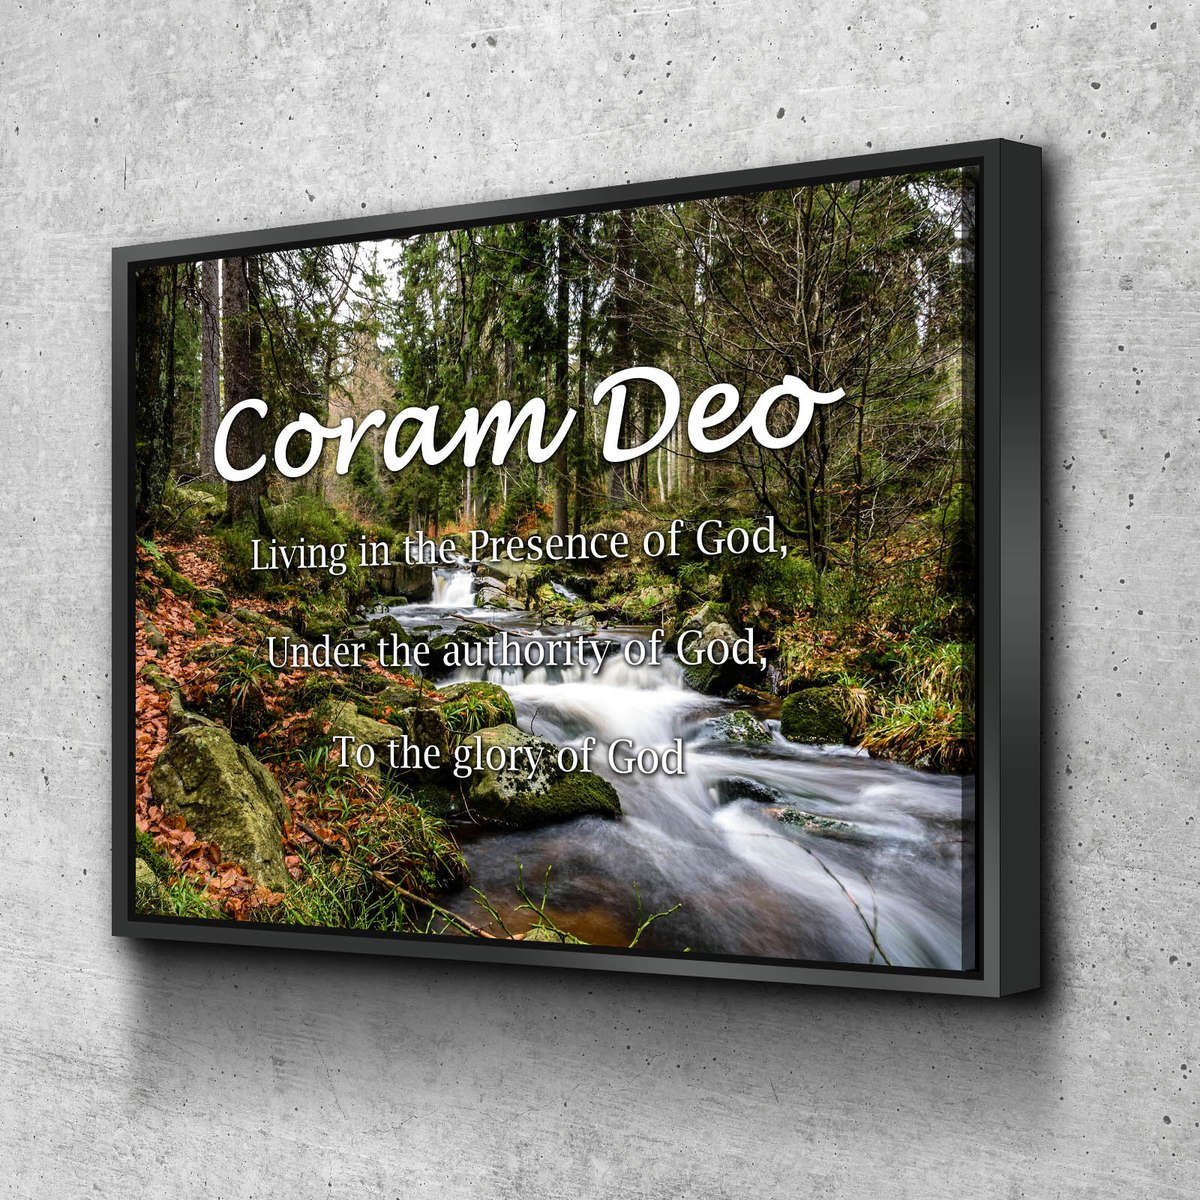 Coram-Deo-art-with-black-frame-is-great-wall-decor